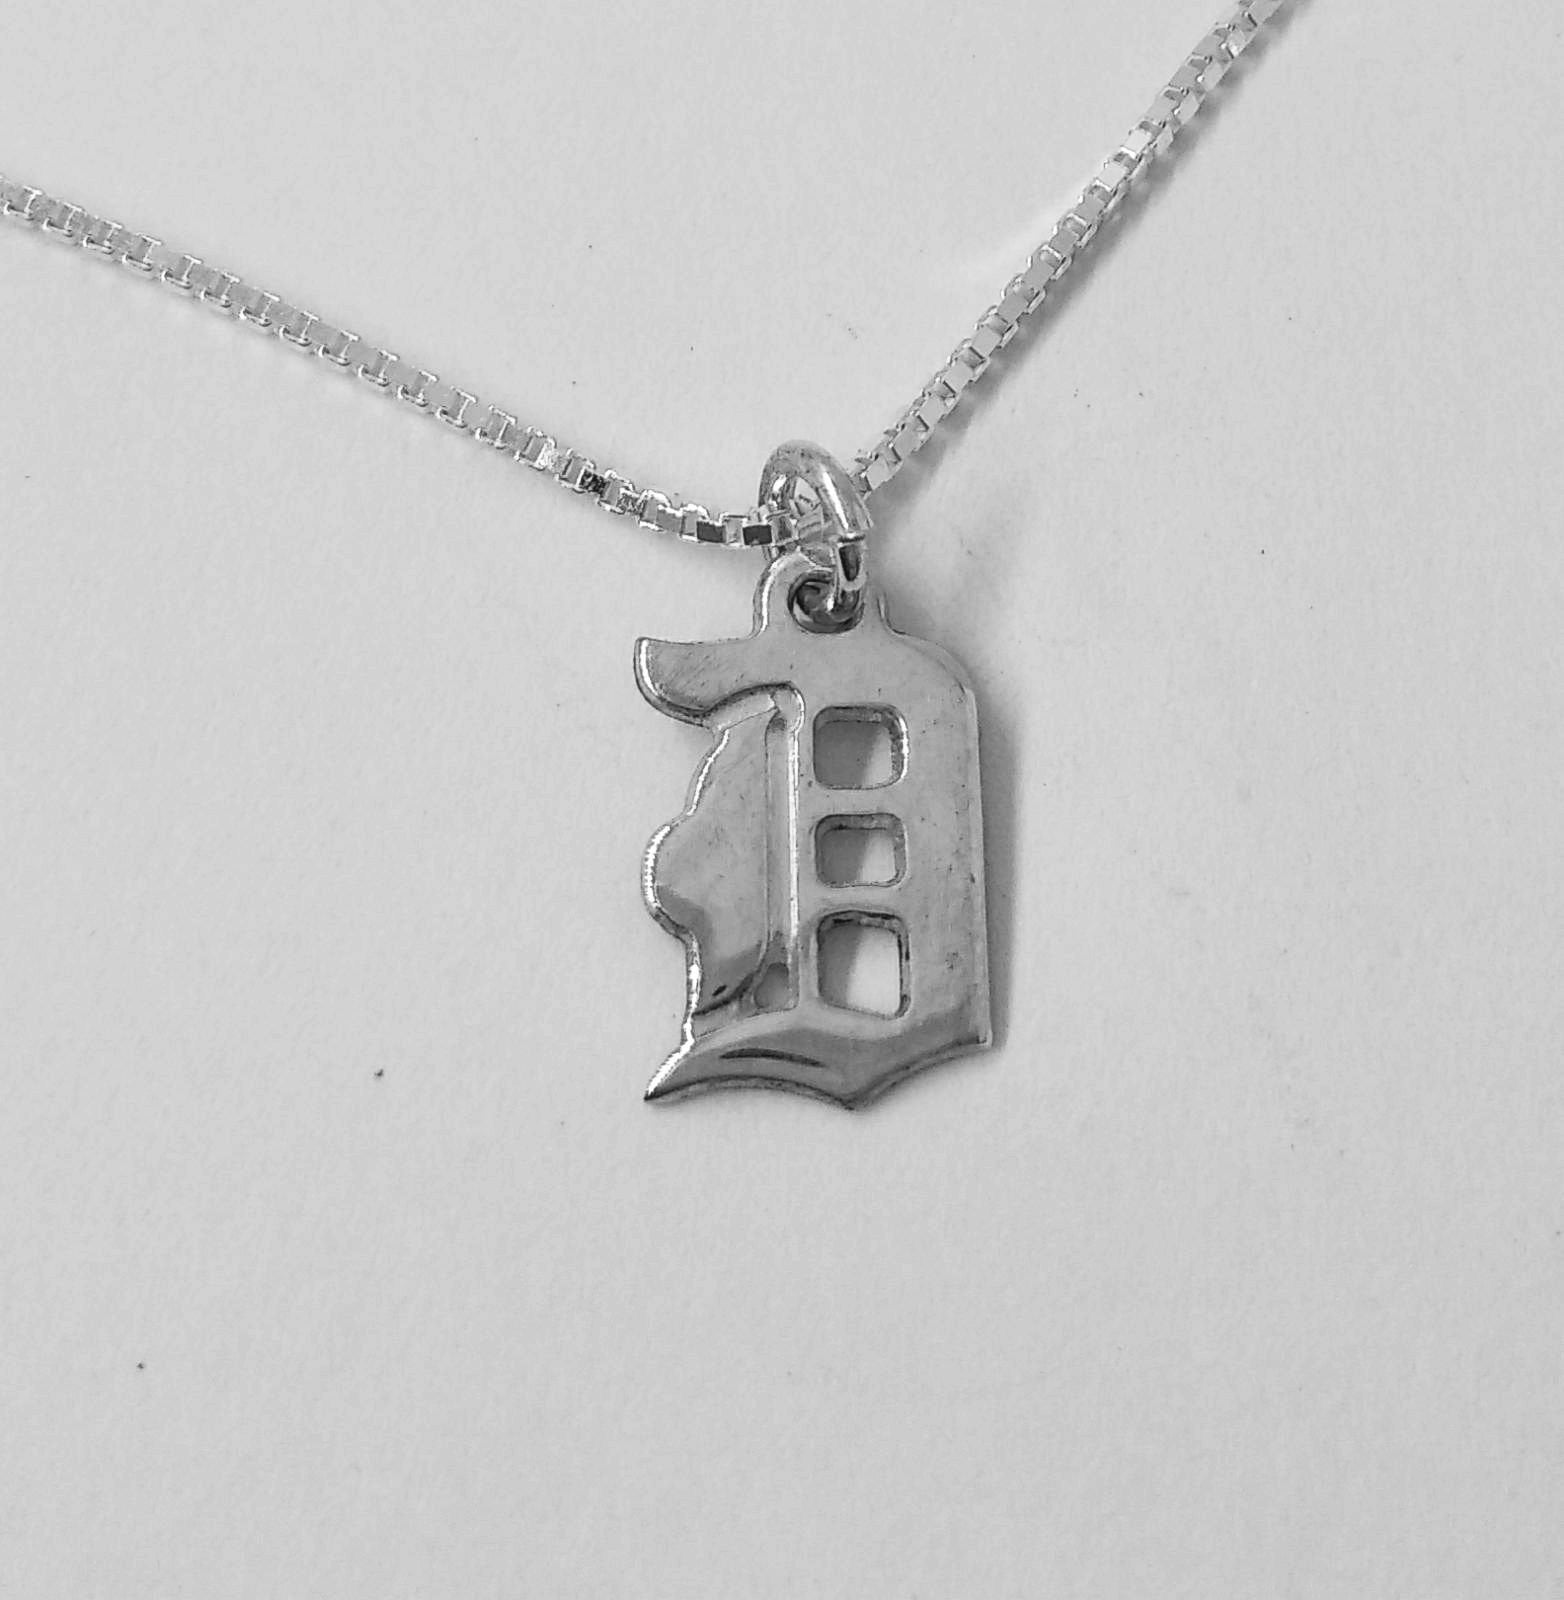 D Initial Old English Letter Charm Pendant Necklace In Sterling